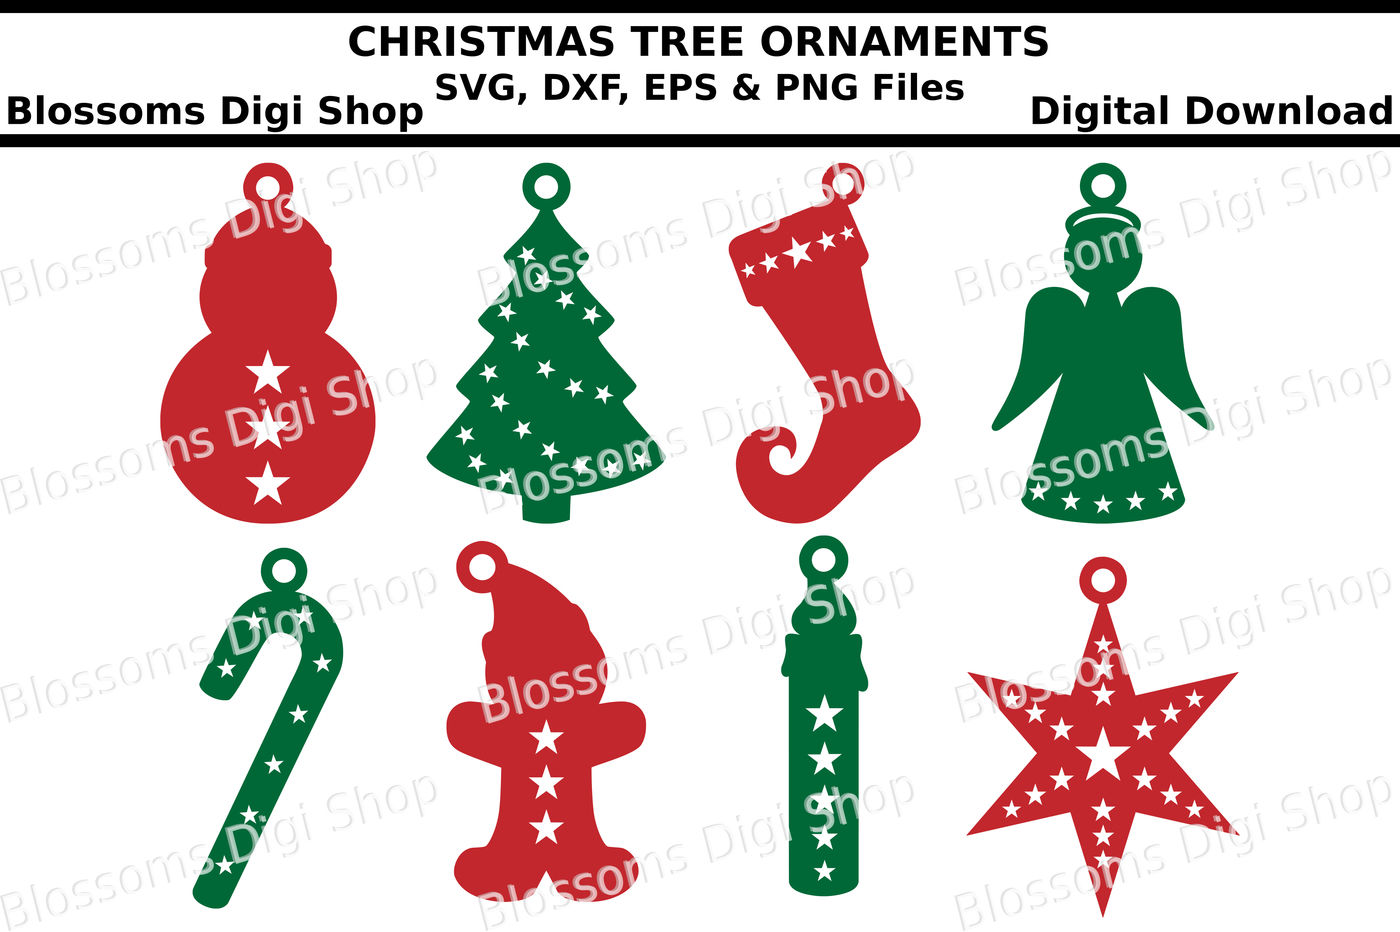 Tree Ornaments Svg Eps Dxf And Png Cut Files By Blossoms Digi Shop Thehungryjpeg Com